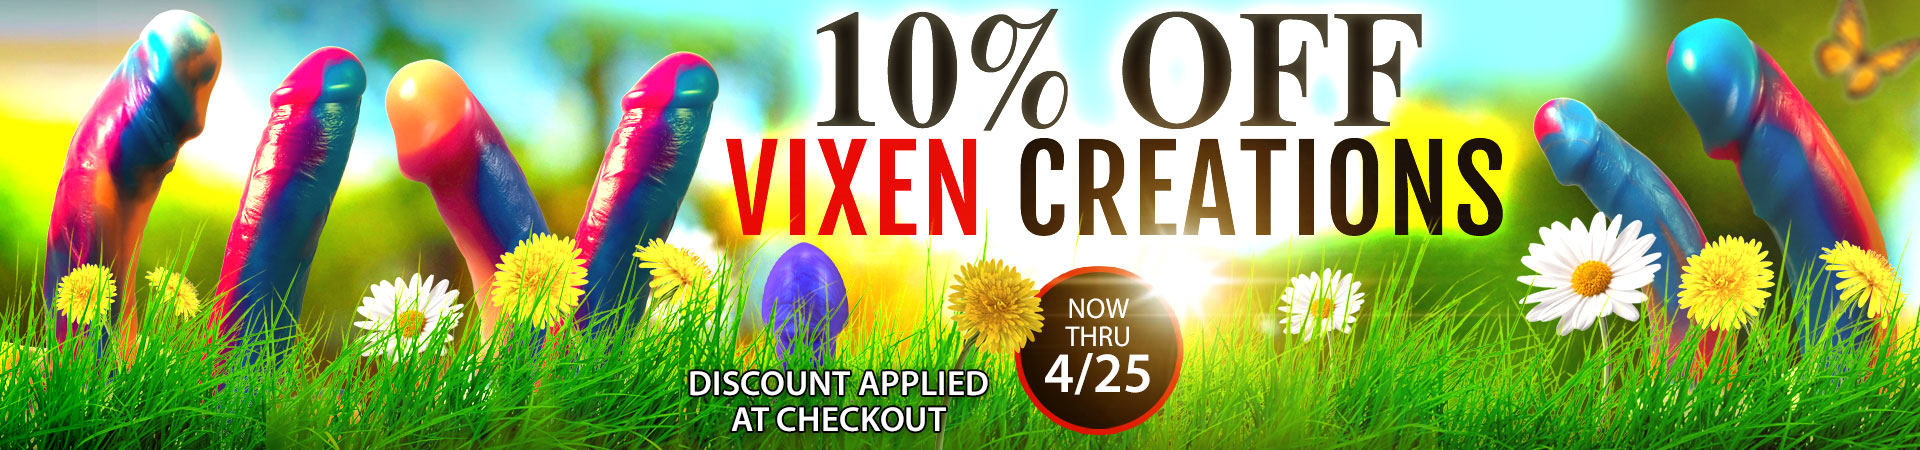 Right NOW at SheVibe! Save 10% on all Vixen Pleasure Products! Sale Ends 4/25. Discount Applied At Checkout.